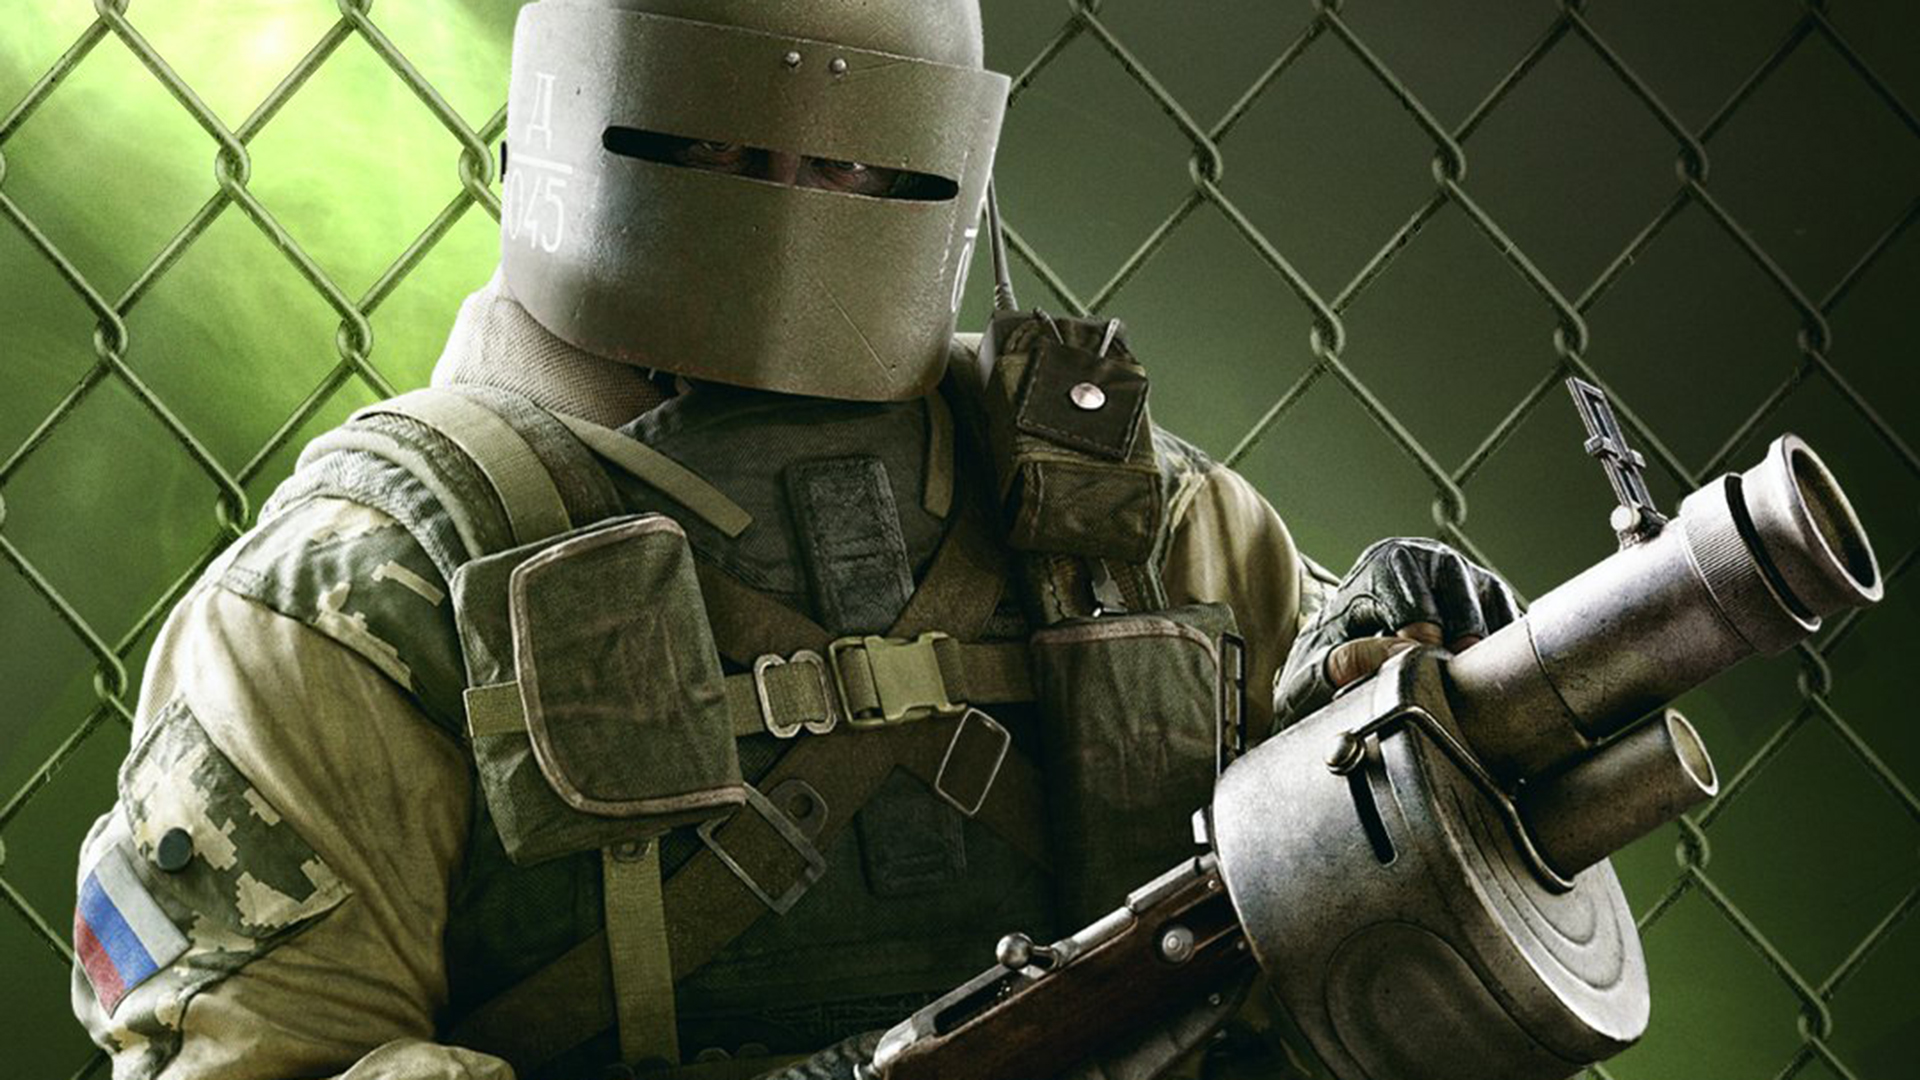 nvidia-dlss-2.2-has-already-been-silently-released-in-rainbow-six-siege